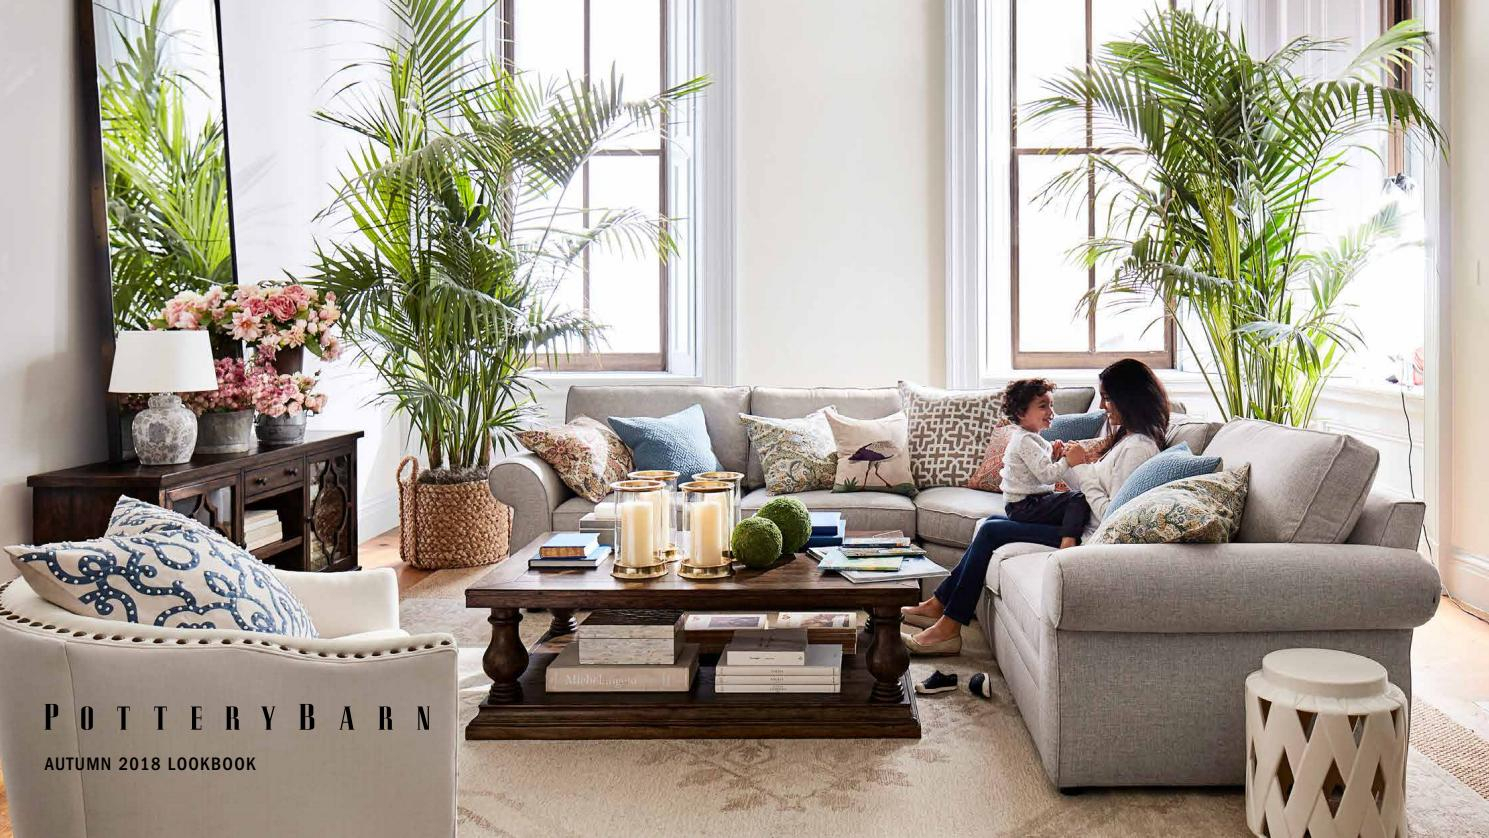 Pottery Barn Autumn 2018 Lookbookwilliams Sonoma Inc With 2018 Seadrift Banks Extending Dining Tables (View 15 of 25)